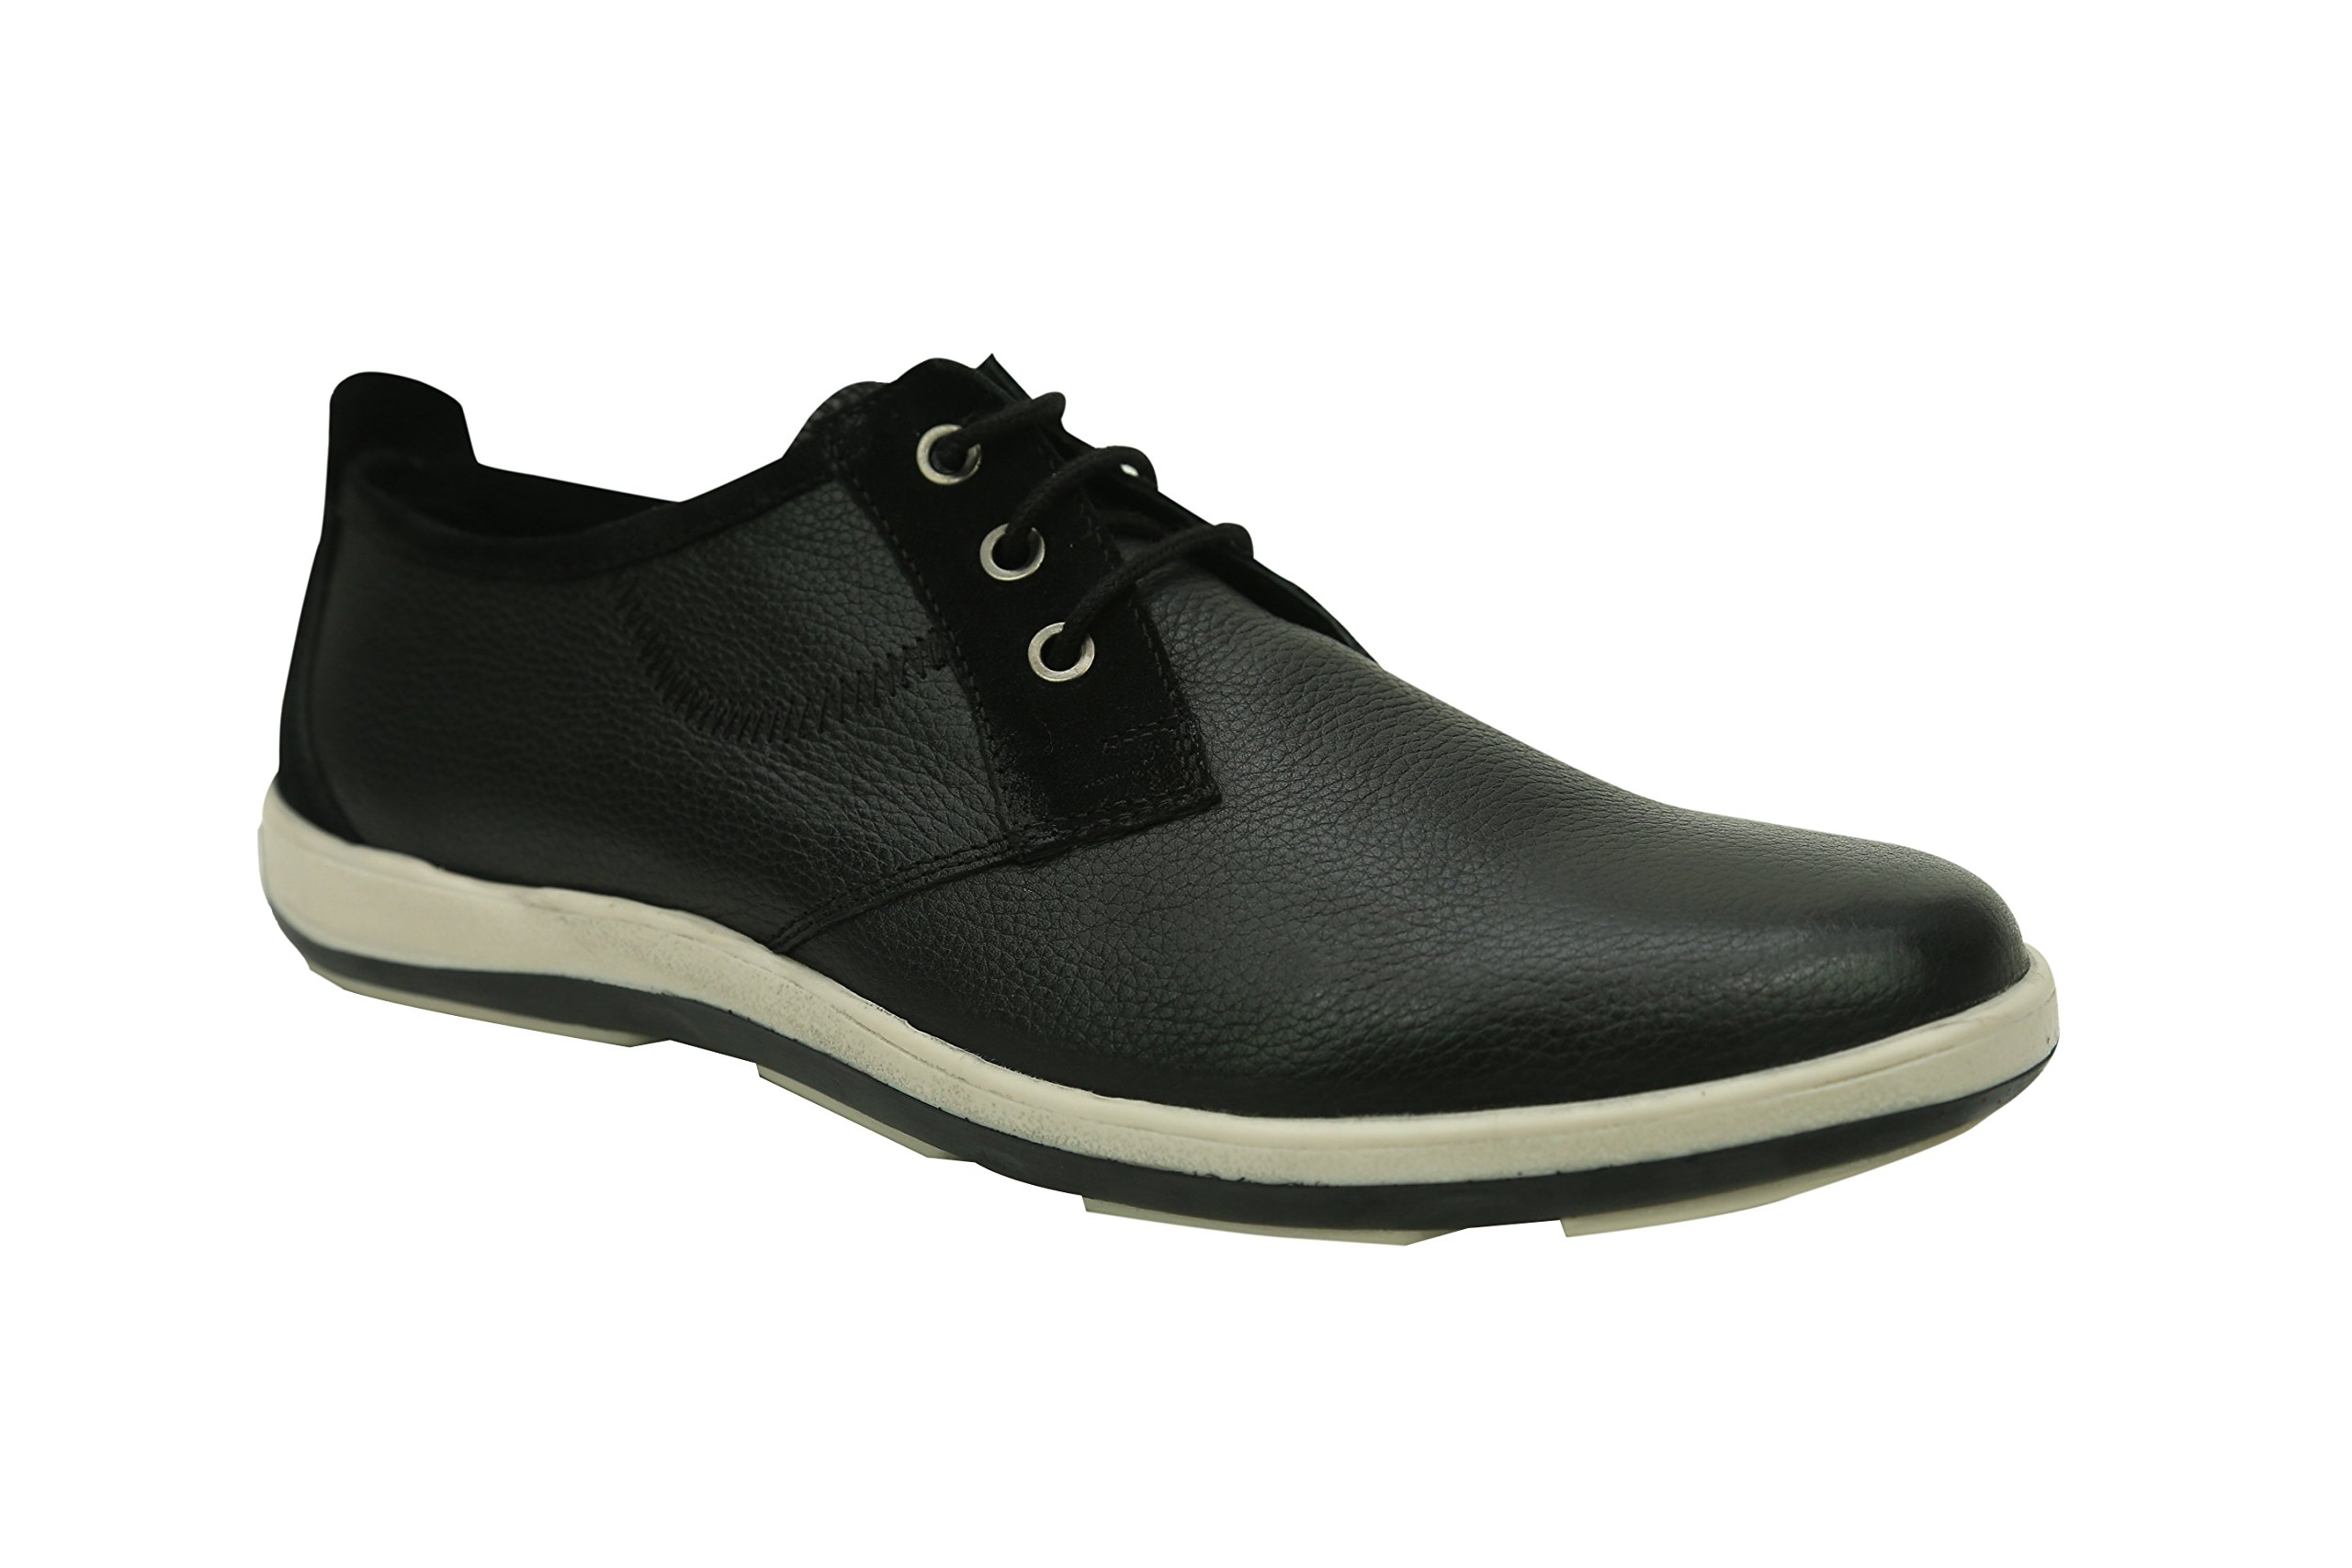 Andrew Fezza AF-L9604 Mike Oxford Leather Shoes with Suede Trim, Black Size-12